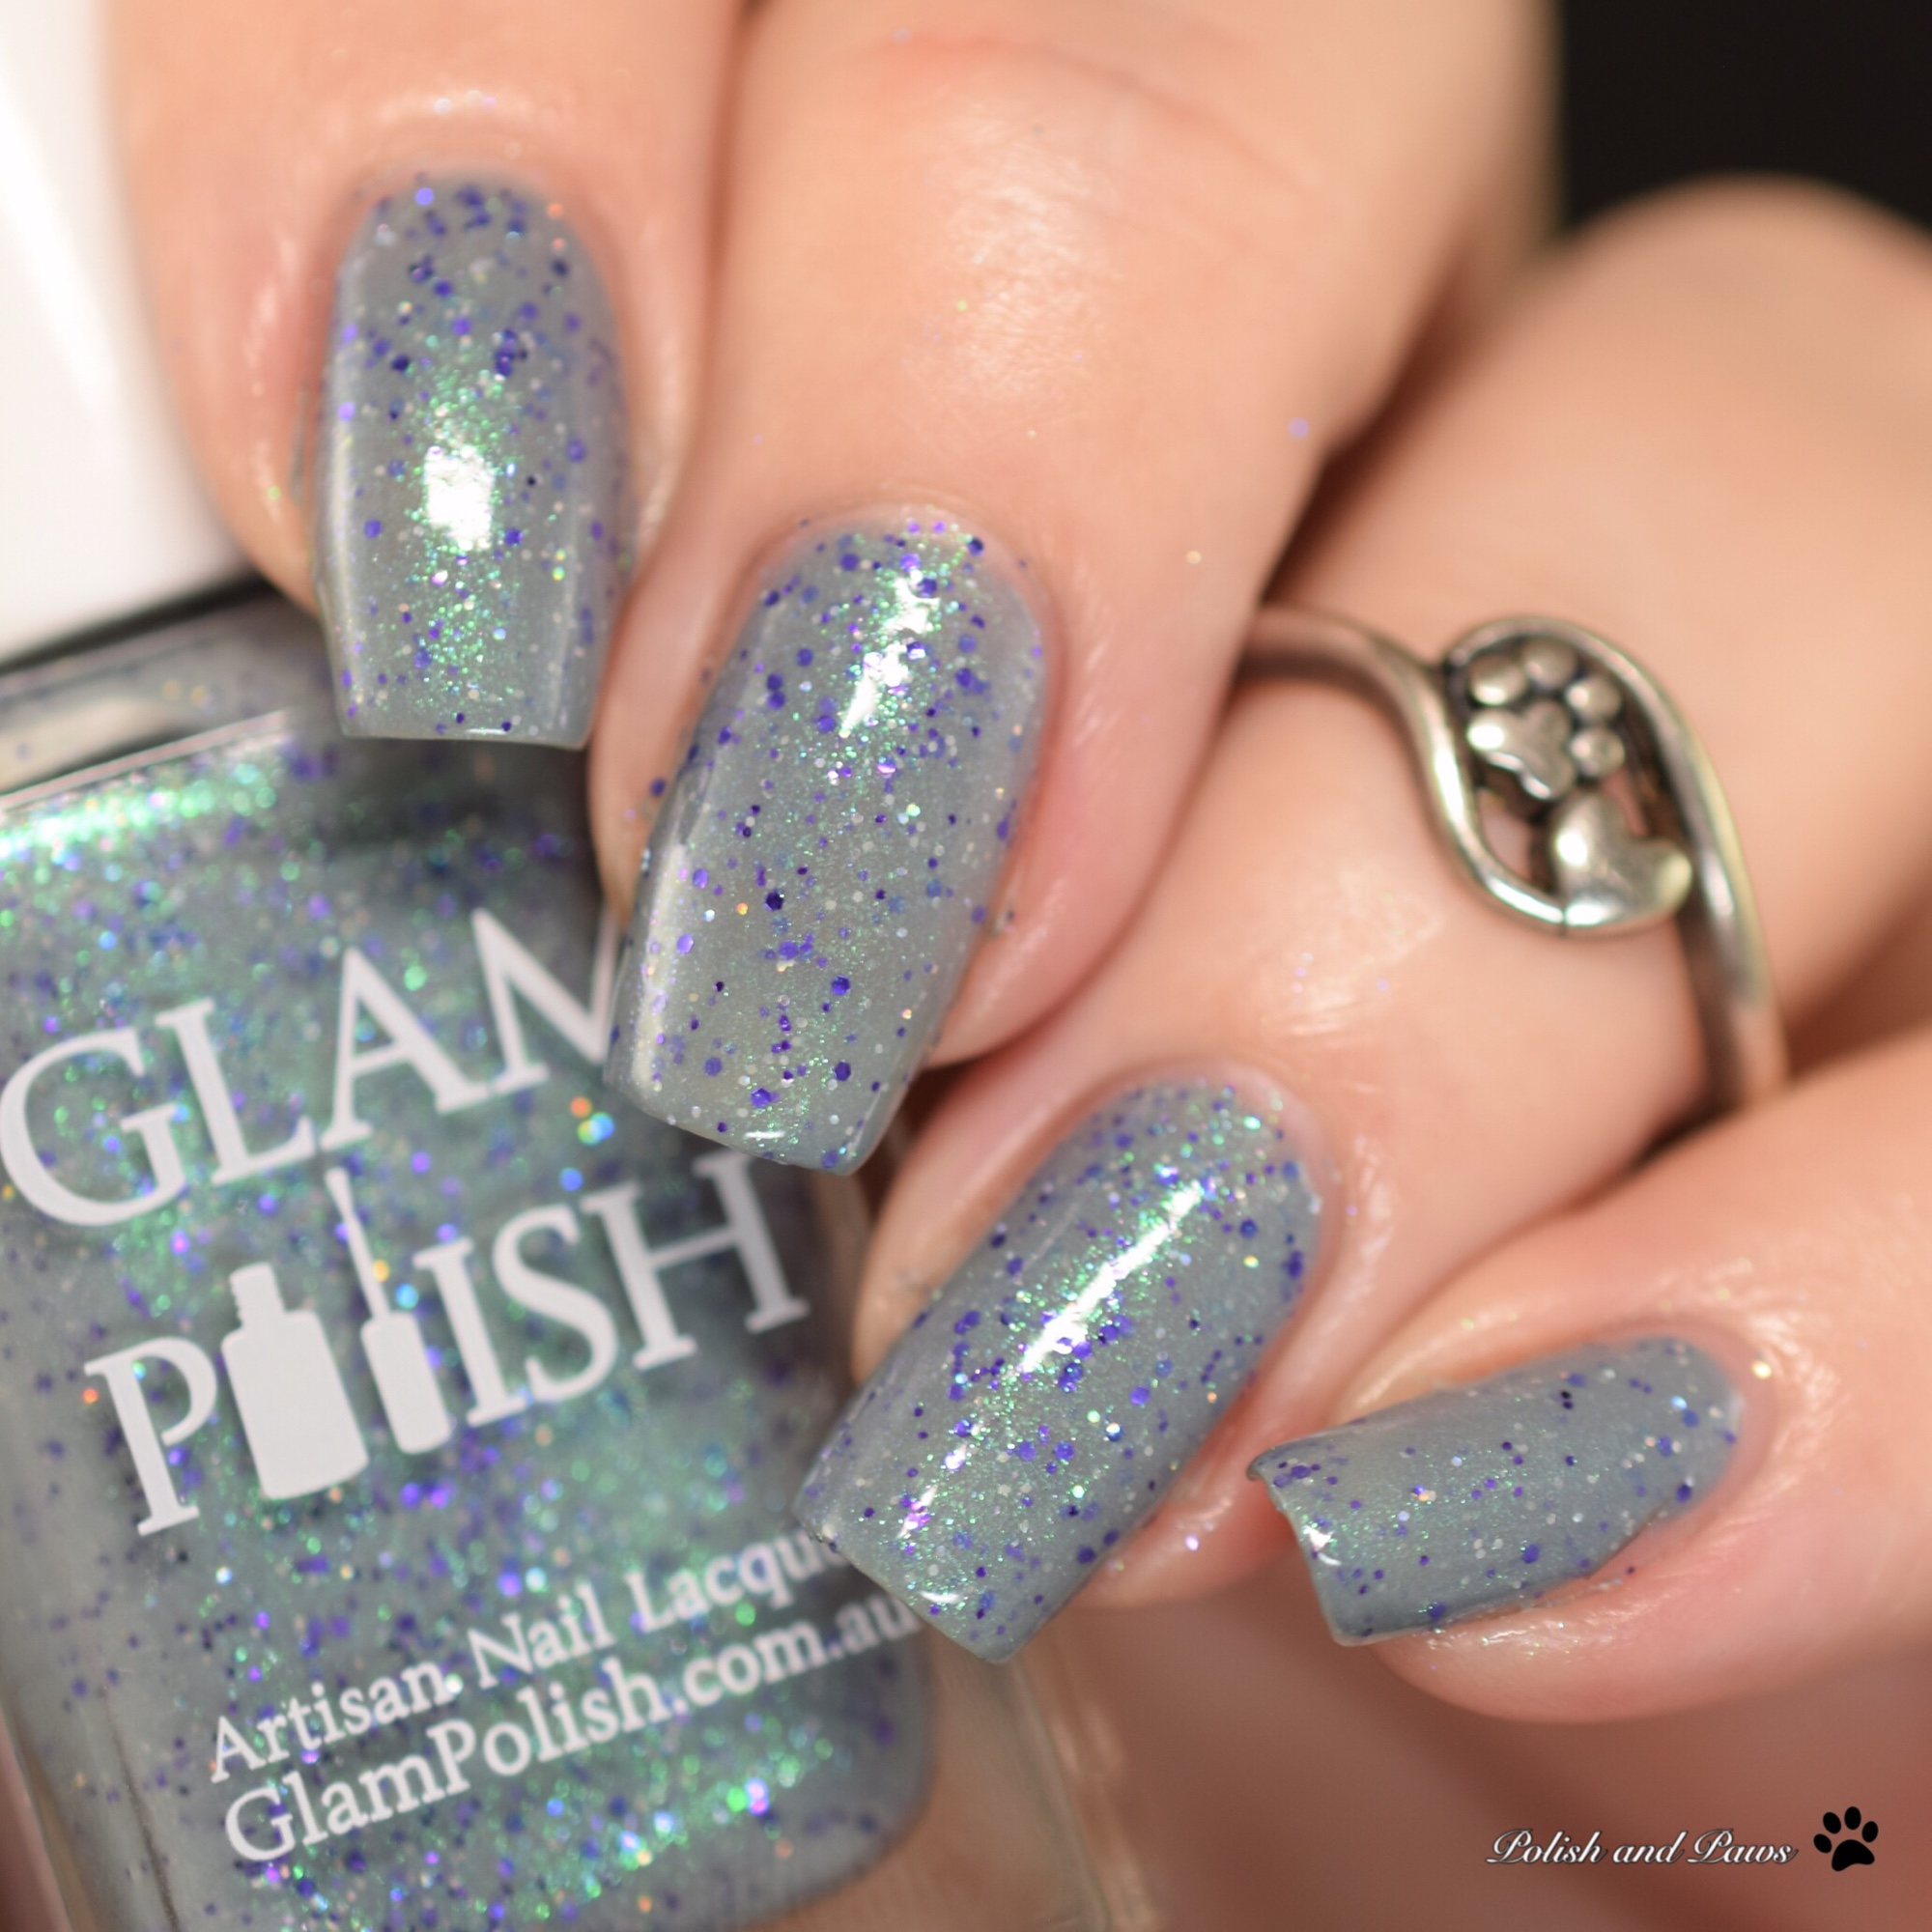 Glam Polish 10 Things I Hate about You